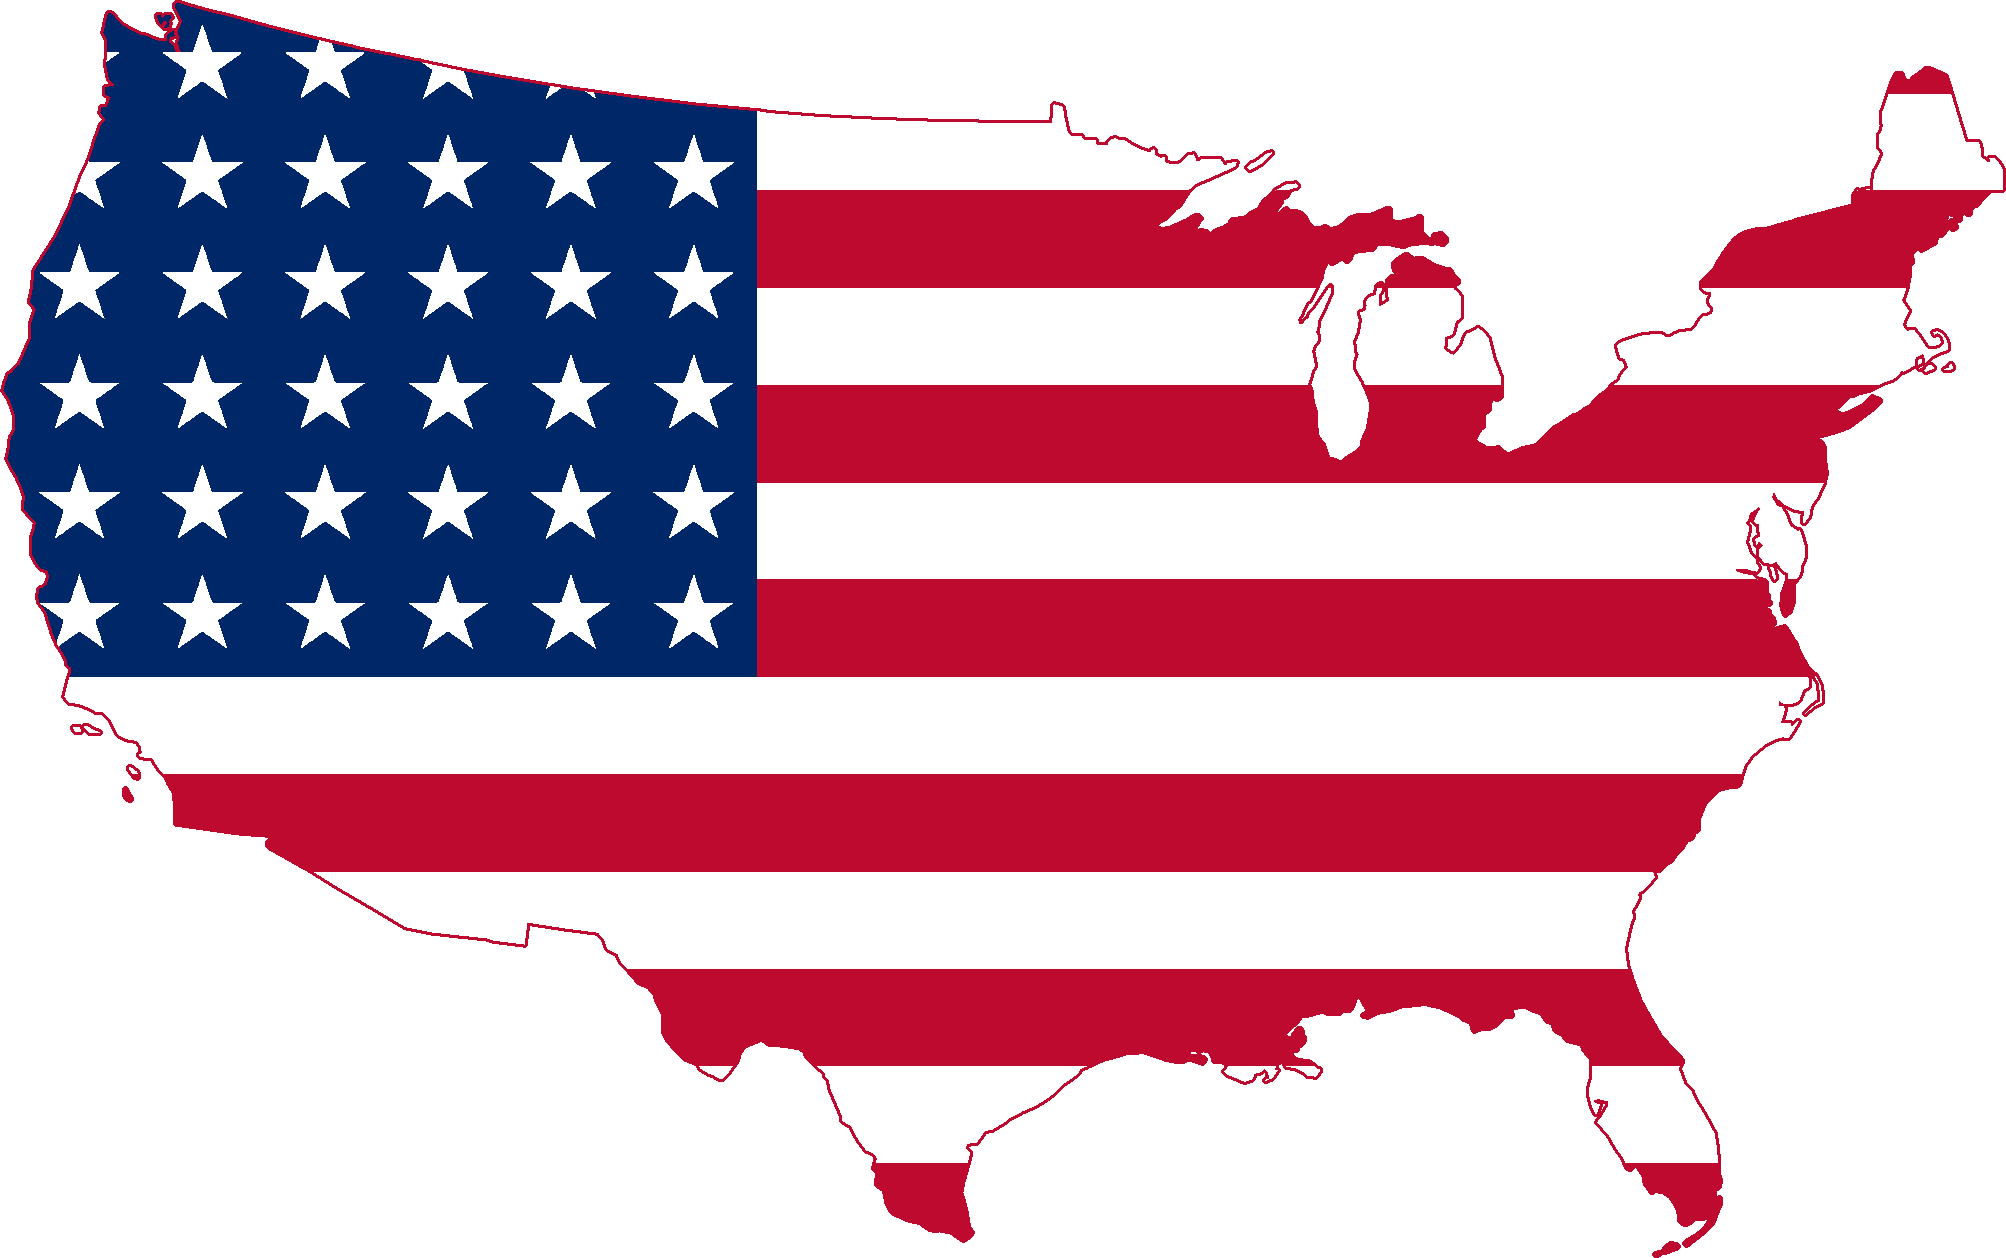 https://upload.wikimedia.org/wikipedia/commons/1/1a/Flag_map_of_the_contiguous_United_States_%281912-1959%29.png